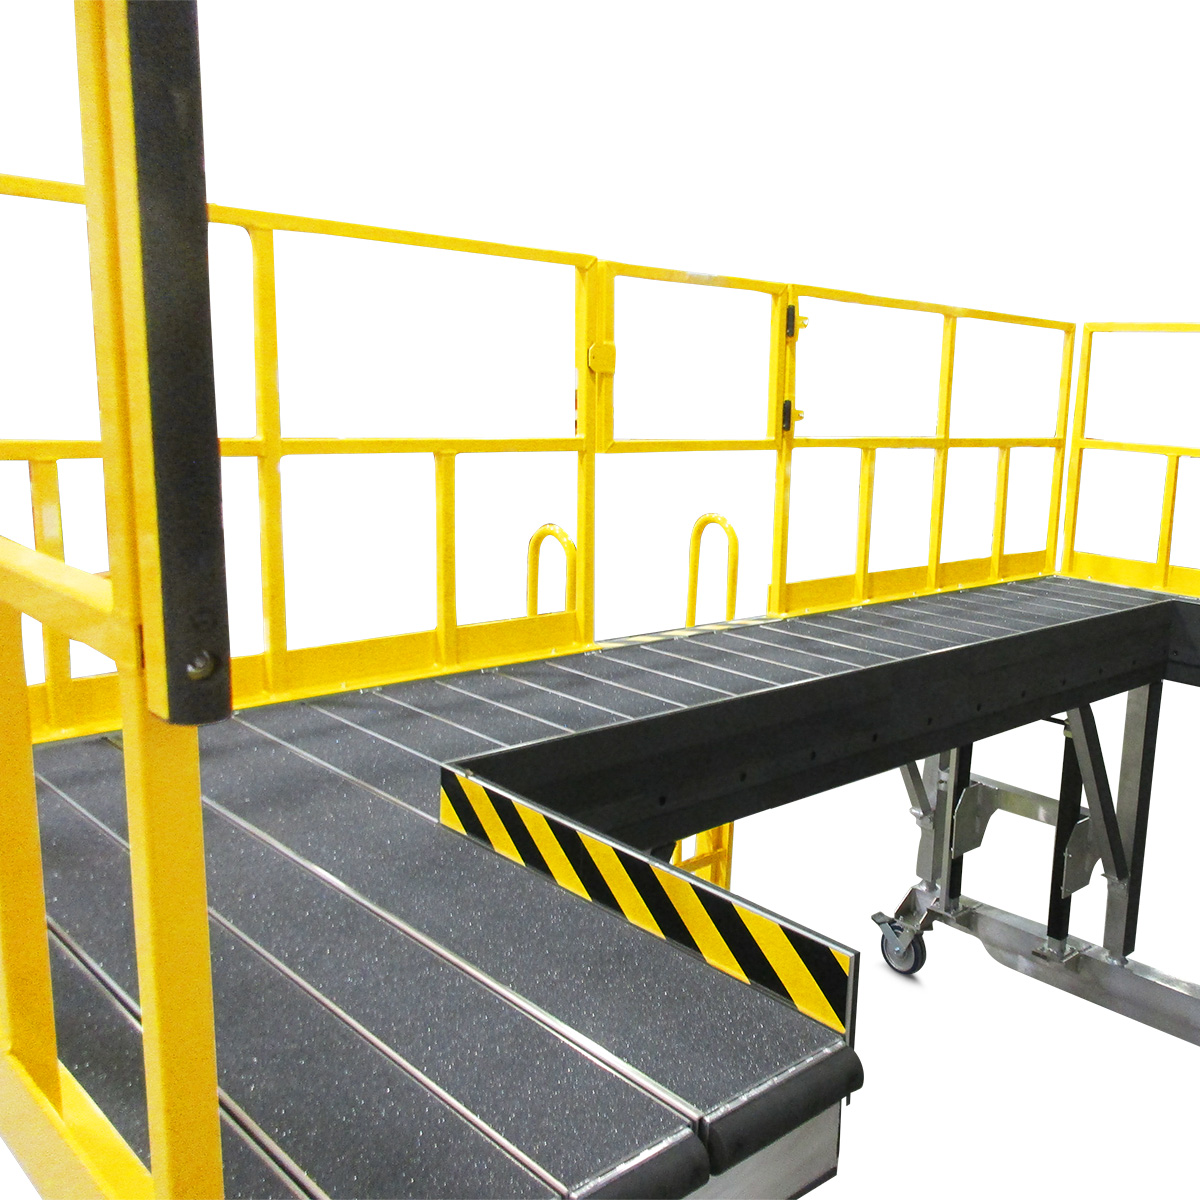 Customizable OSHA compliant aluminum mobile work platforms with decks shaped to conformance and deck extensions for added overreach.